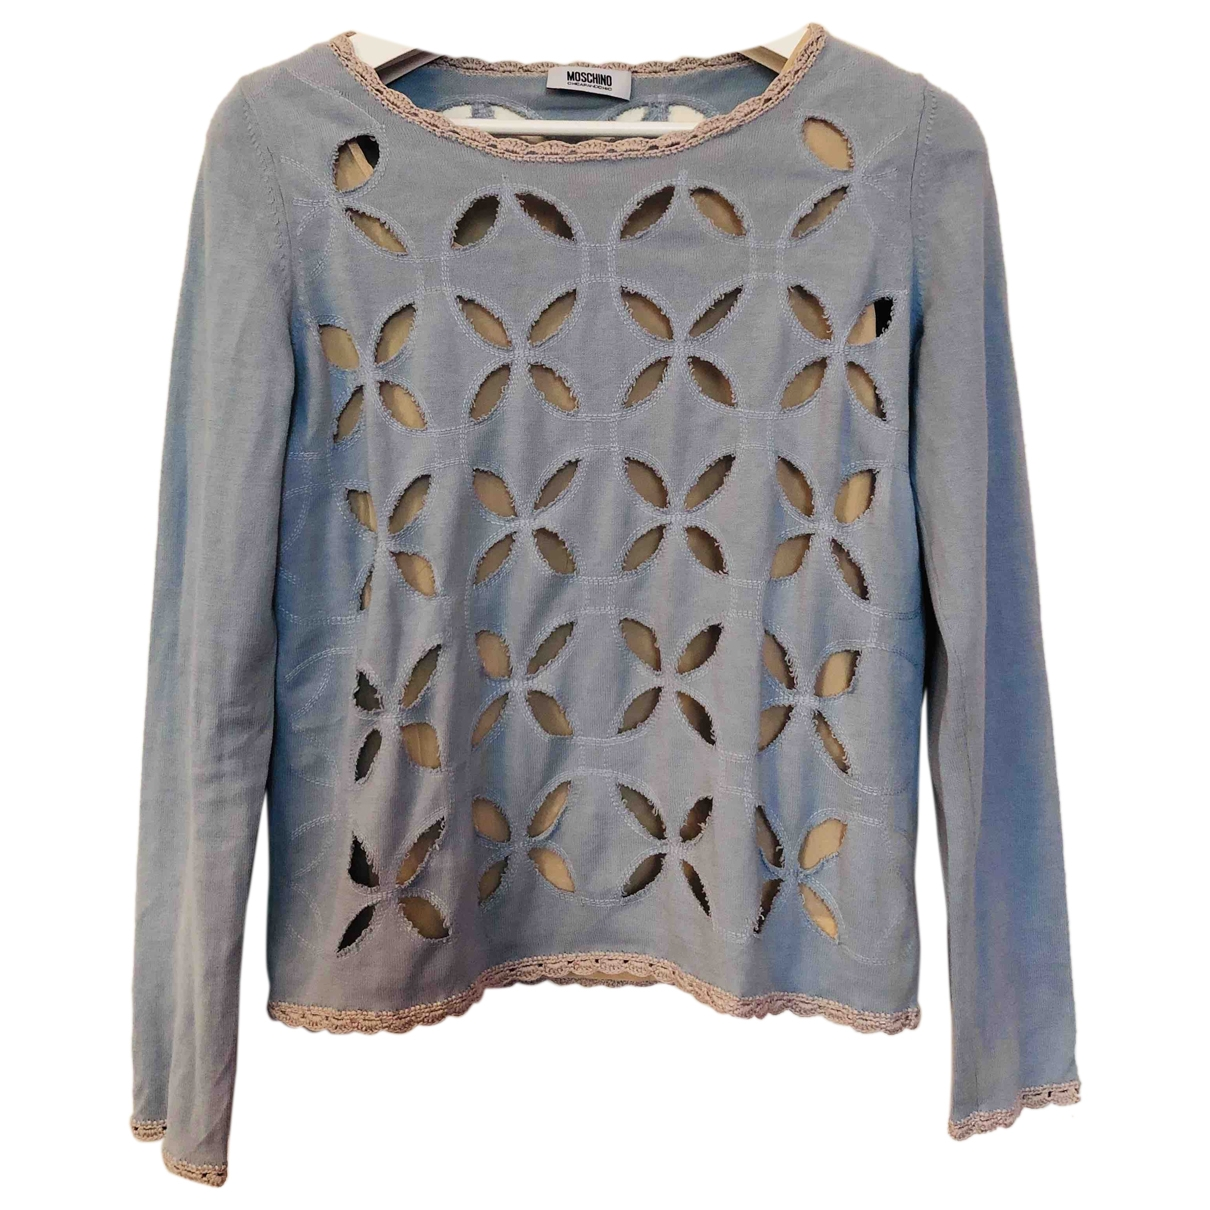 Moschino Cheap And Chic \N Top in  Blau Baumwolle